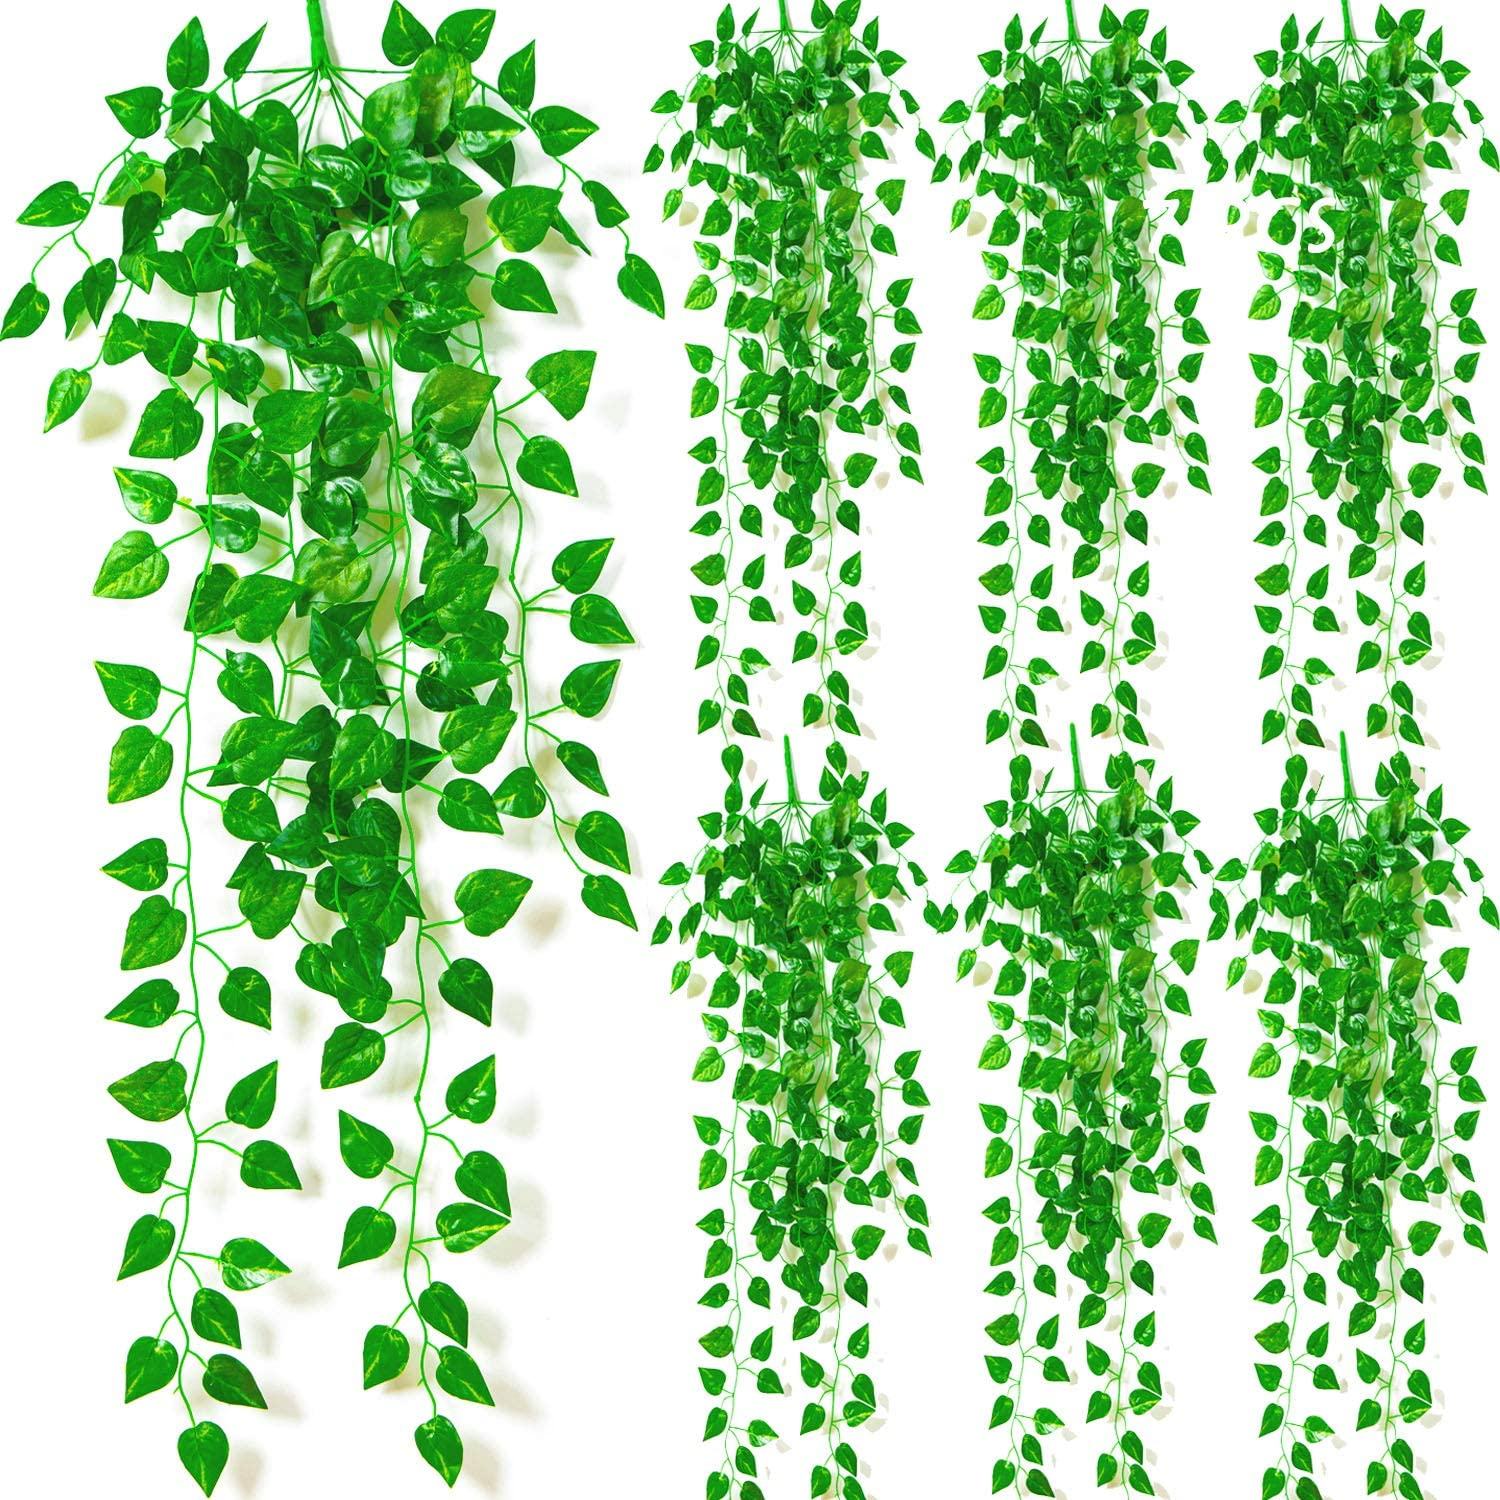 Naidiler 7 Pcs Artificial Hanging Plants, Fake Hanging Plants Vines Faux Ivy Plants Indoor Hanging Décor for Room Celling Photo Shelf, Outdoor Decorations for Porch Wall Fence